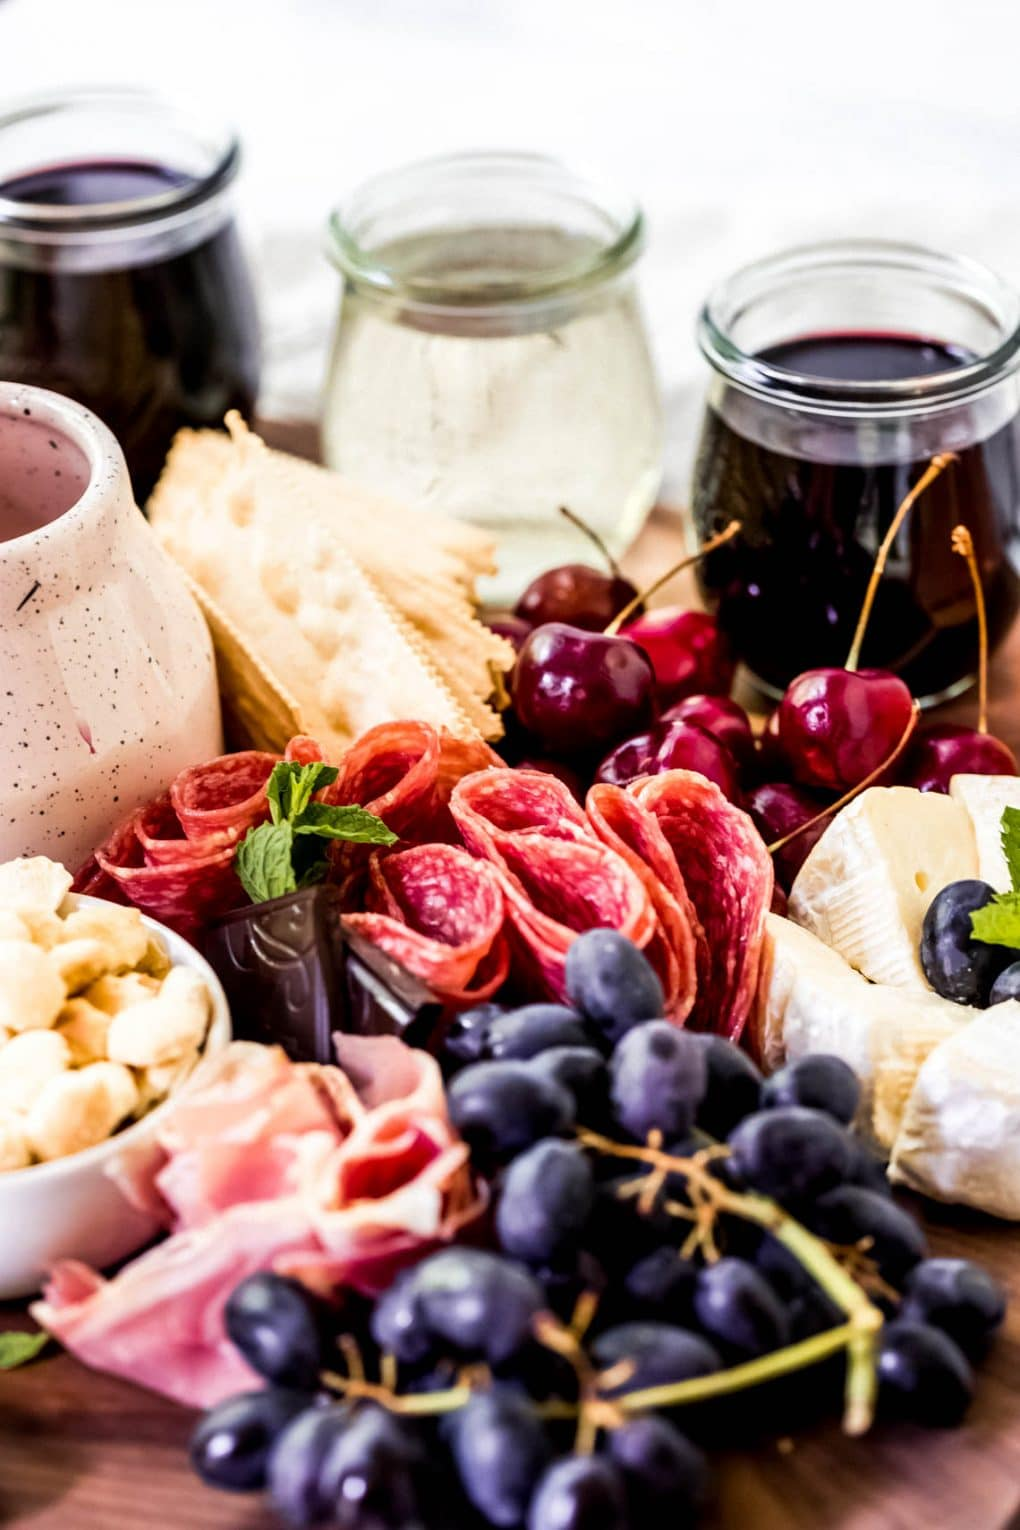 ingredients to make a wine tasting charcuterie board